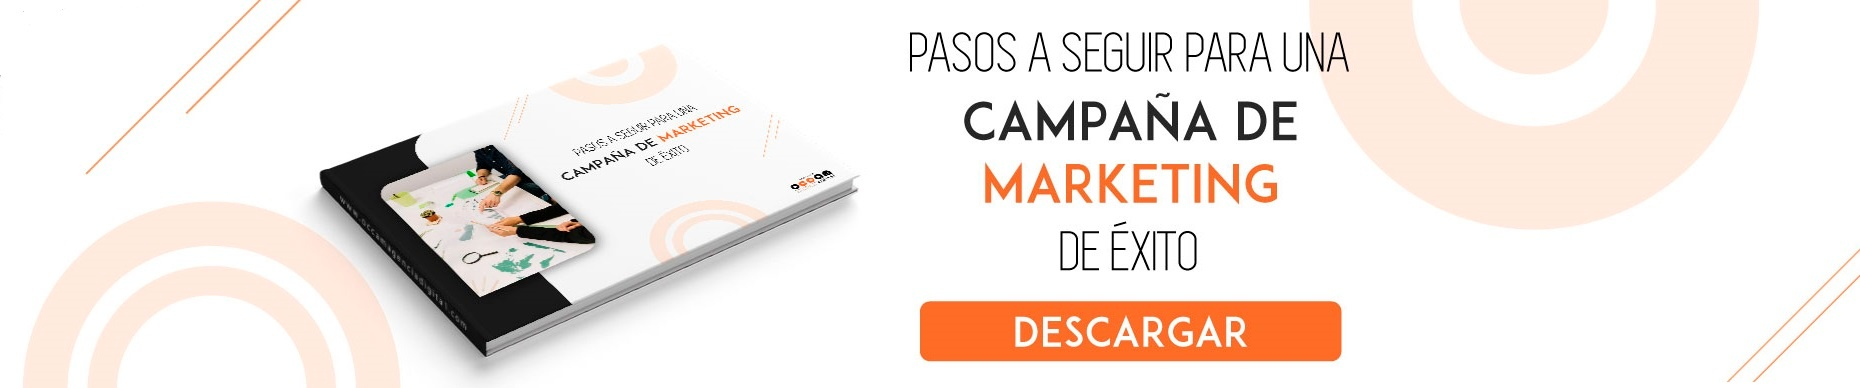 pasos a seguir para una campana de marketing inbound